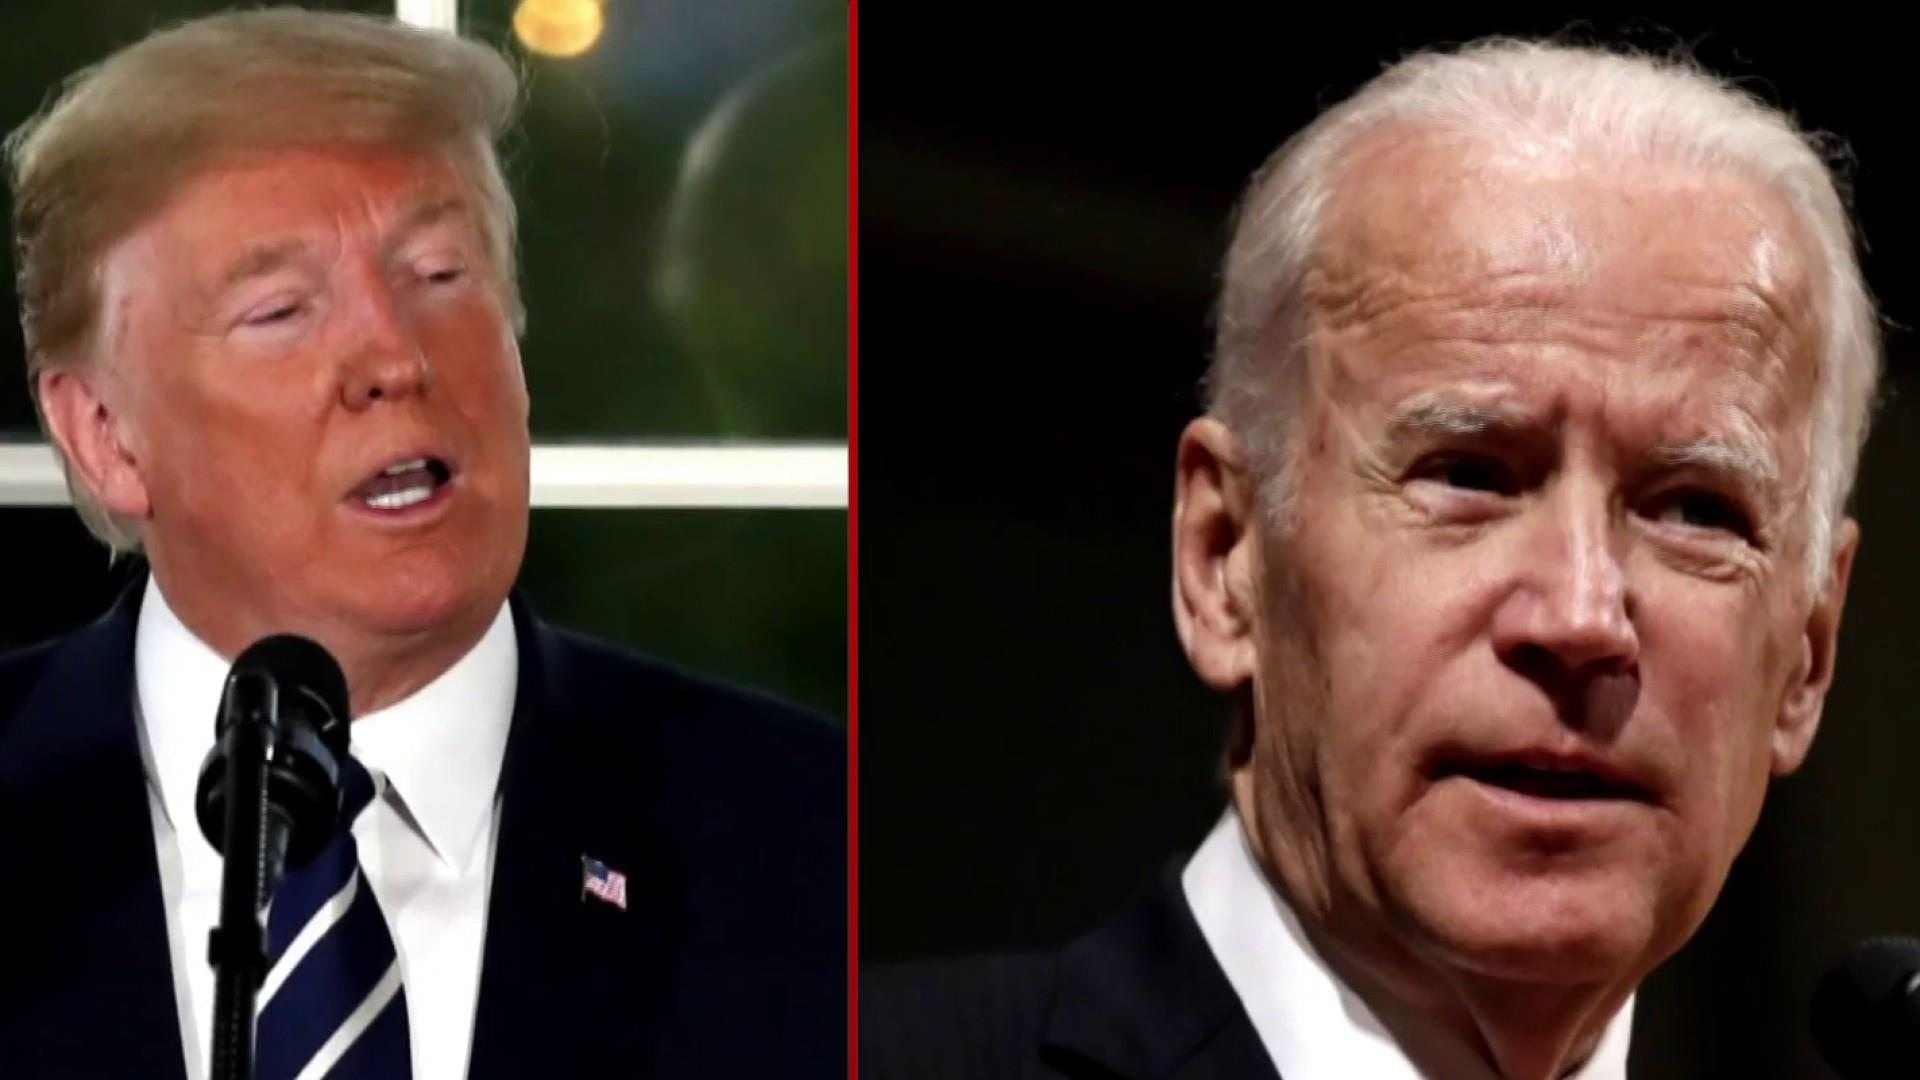 Trump admits he urged Ukraine to investigate Joe Biden